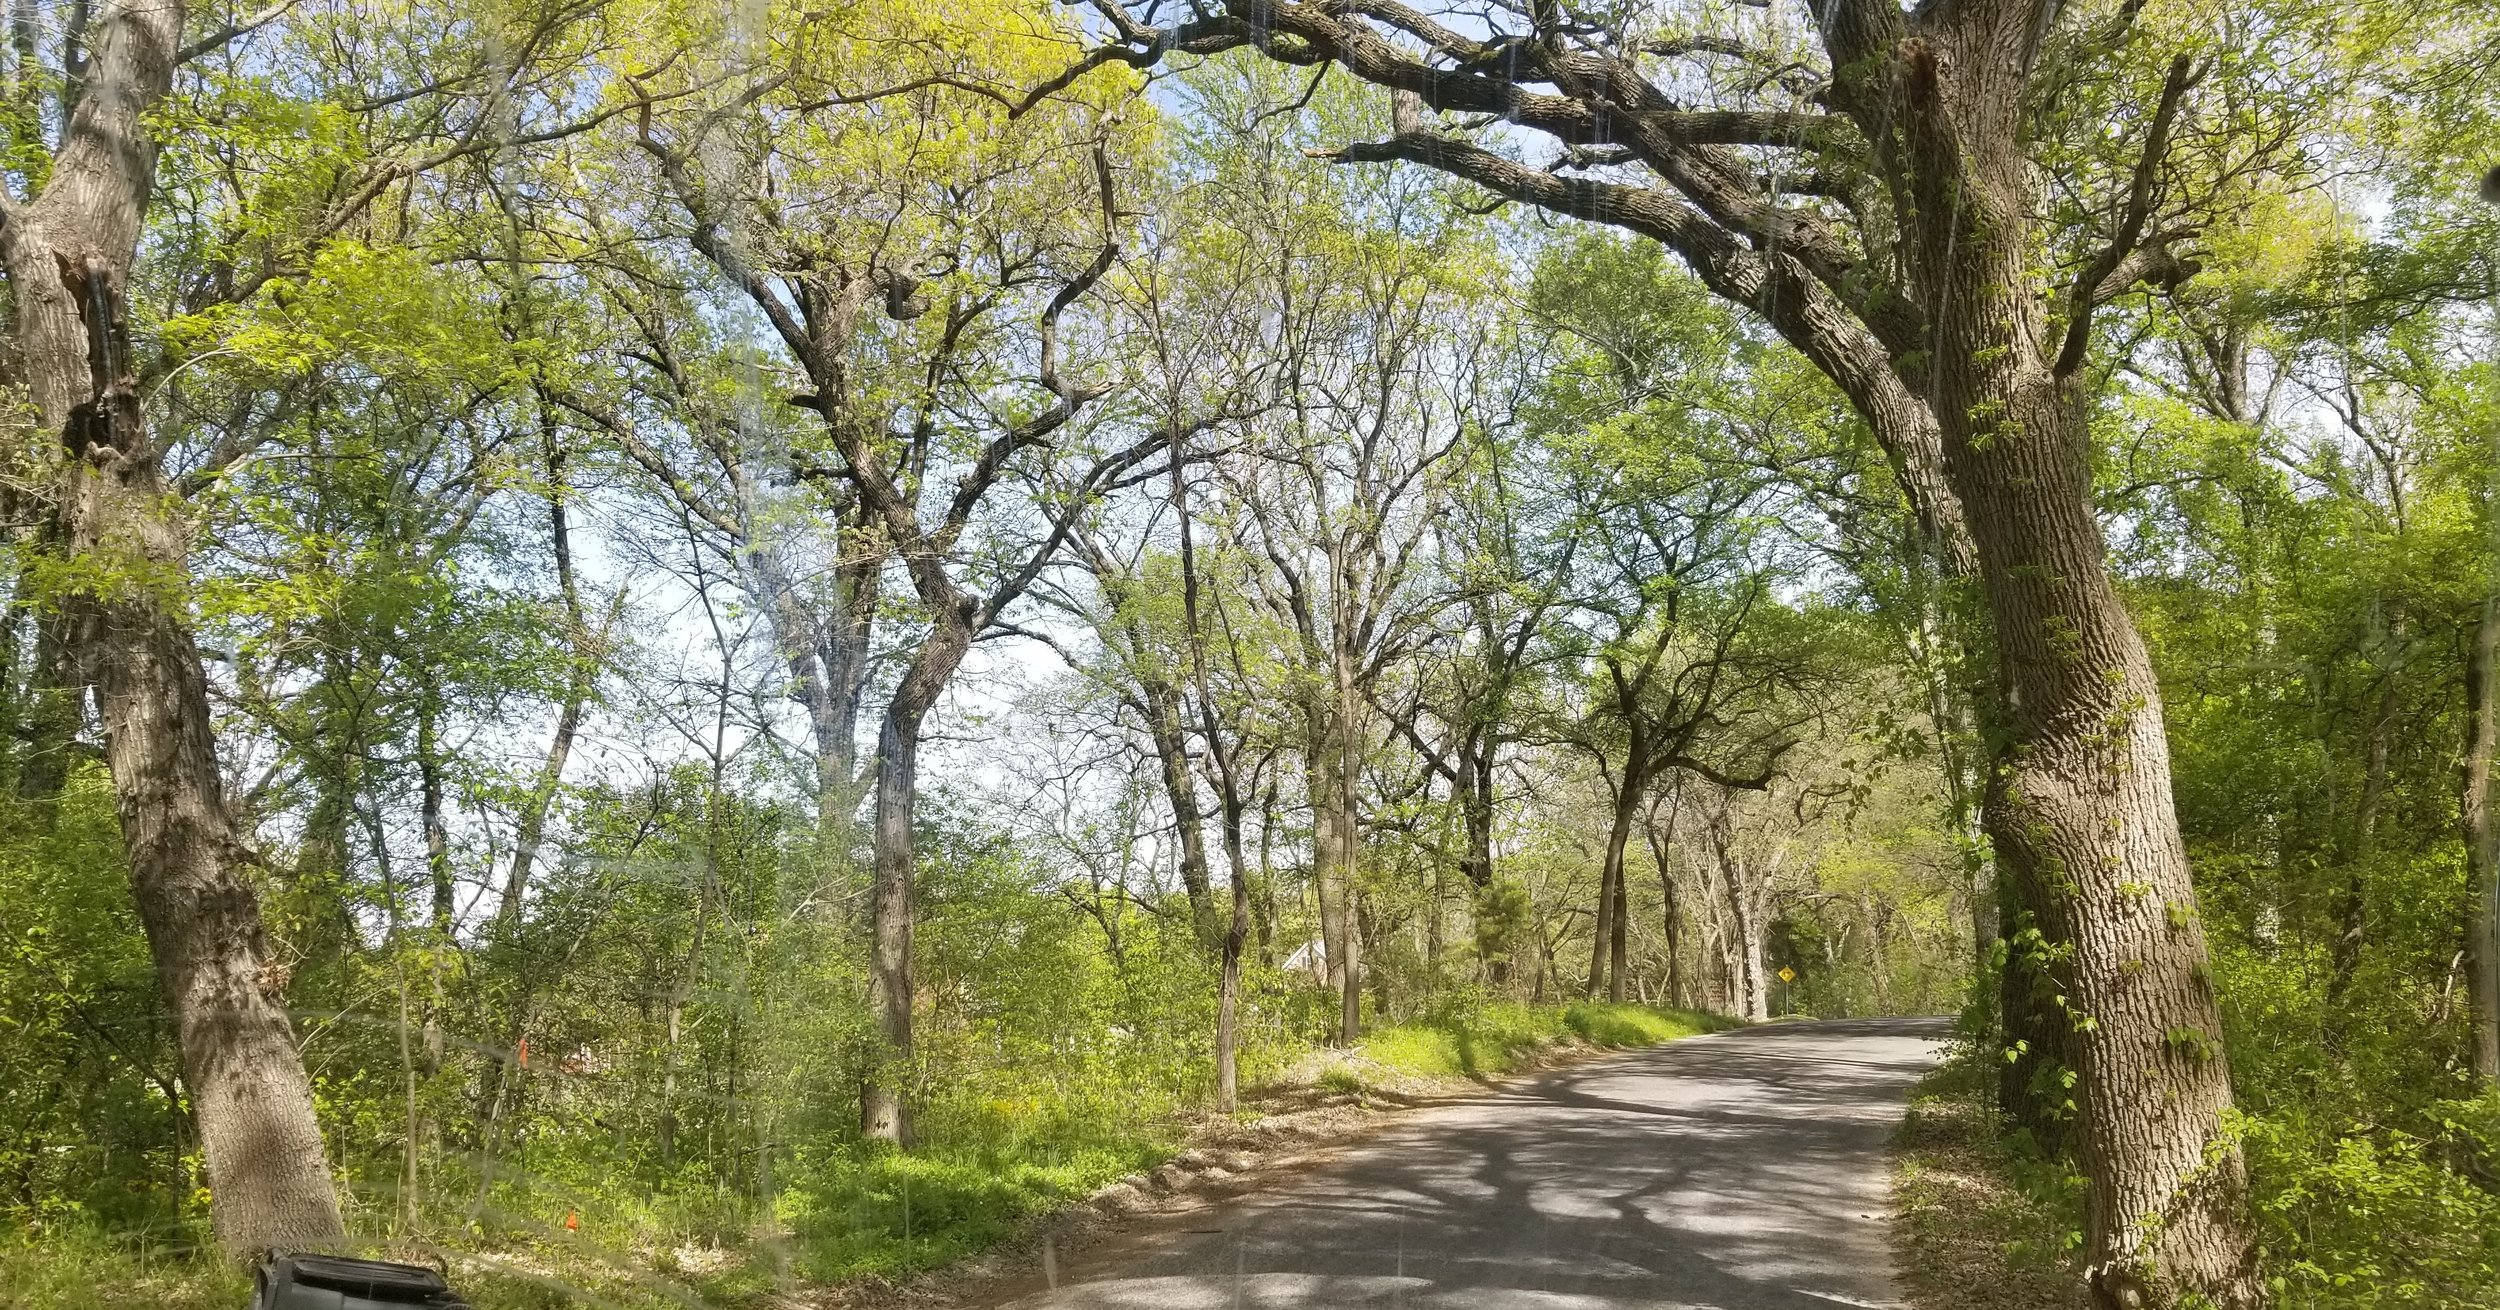 Canopy of trees on the road to my parent's house in Midlothian, TX